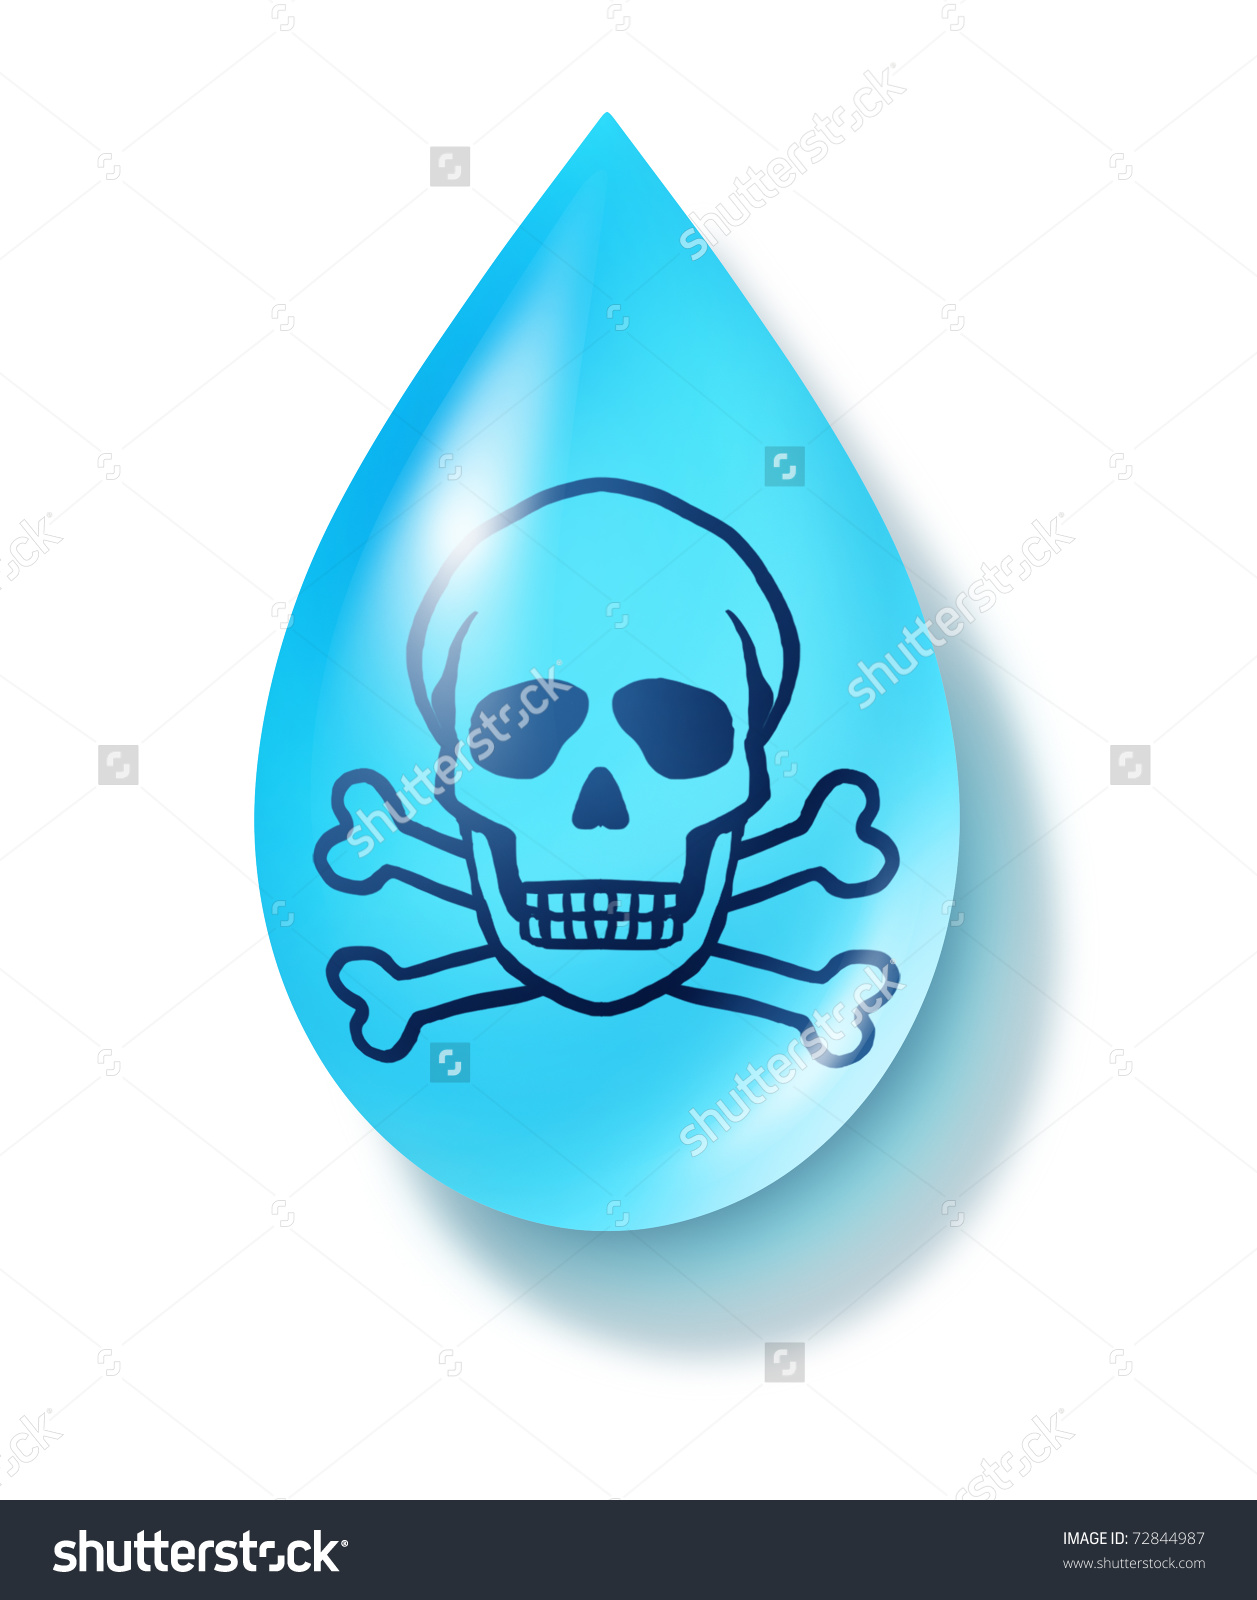 Drinking Contaminated Water Clipart.